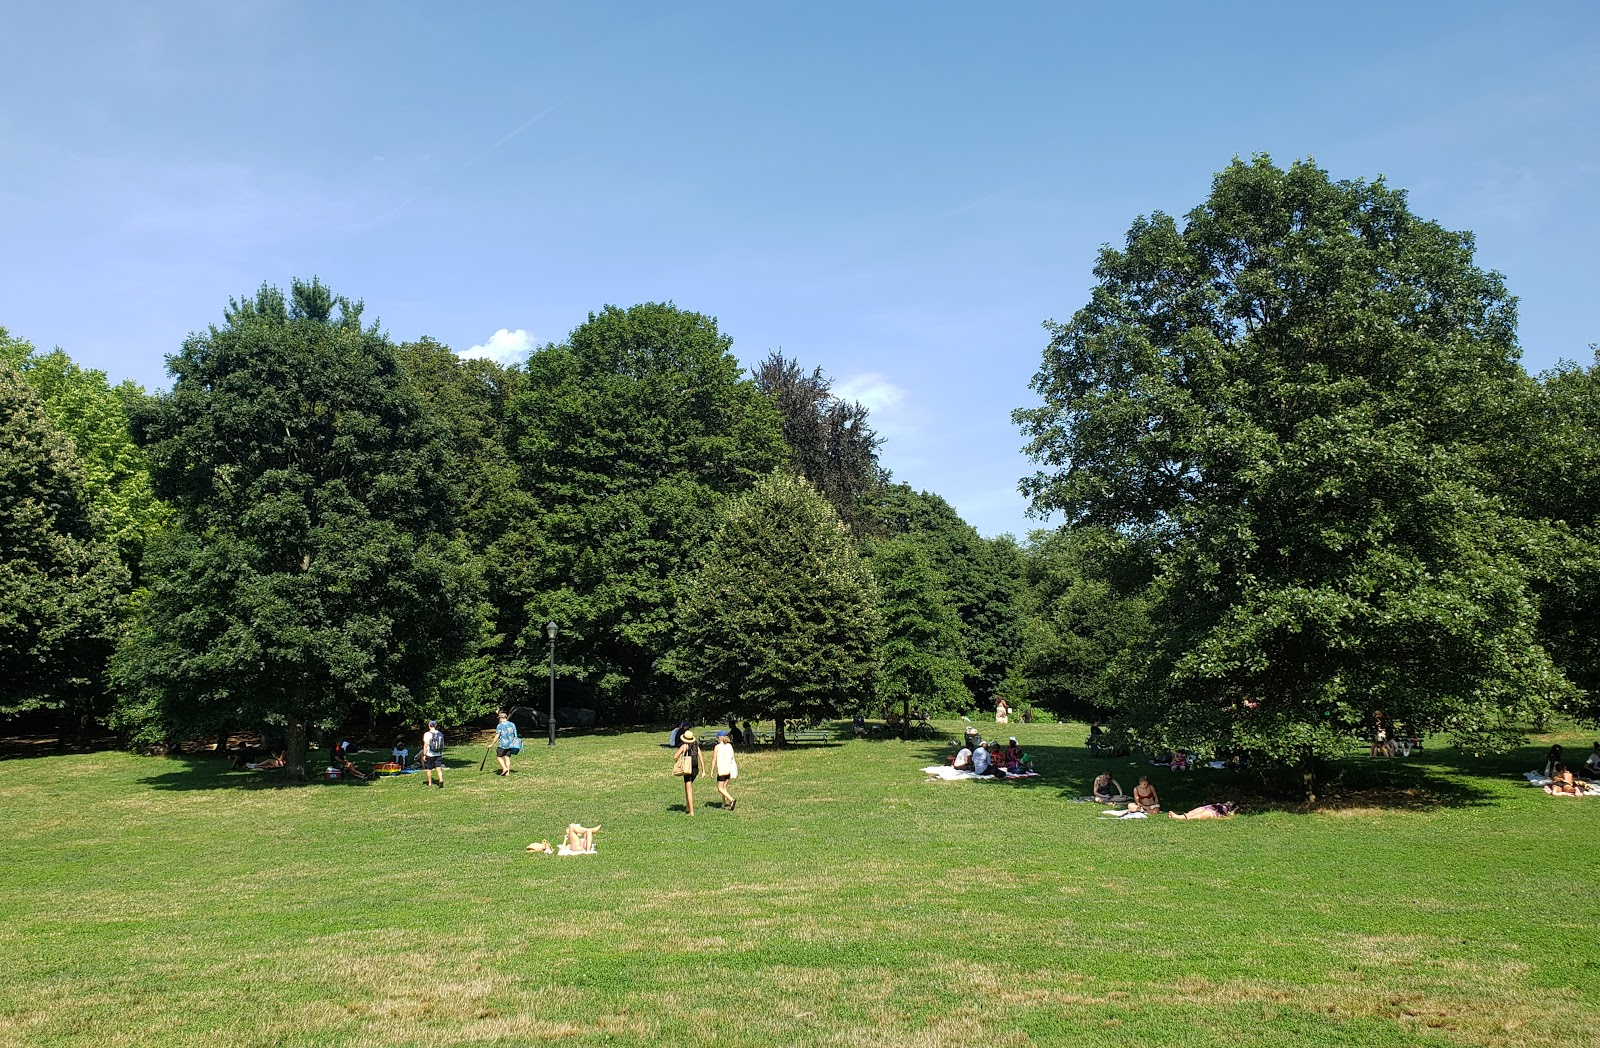 a green open space with trees and people on blankets